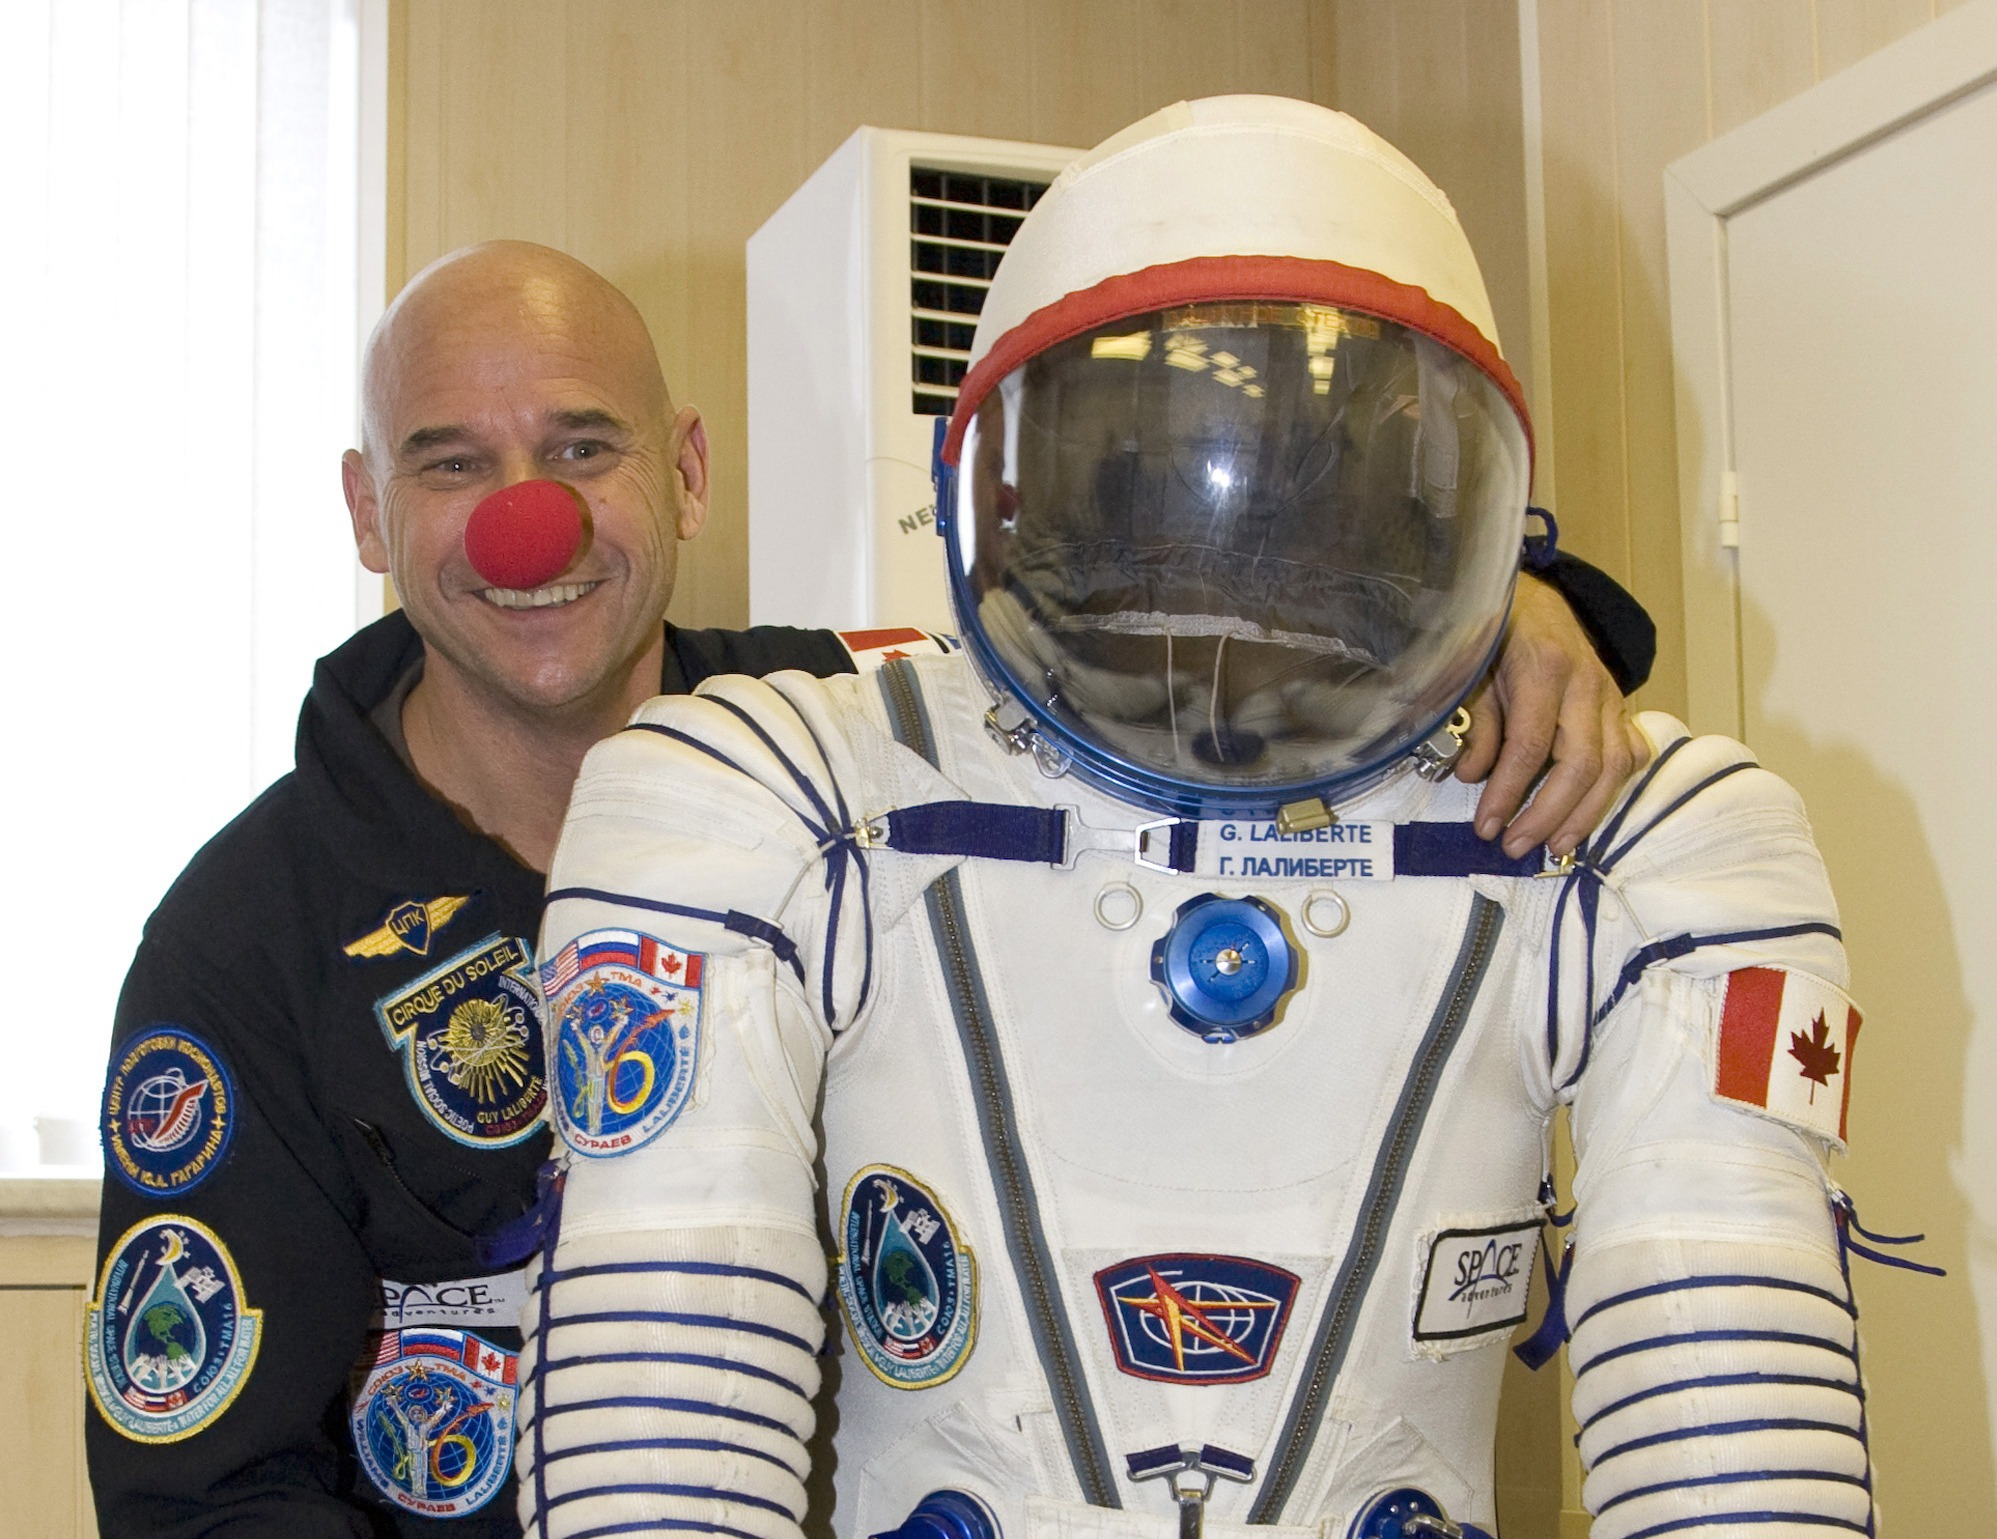 Canadian billionaire Guy Laliberte holds his space suit inflated under pressure at Baikonur cosmodrome, September 18, 2009. Laliberte, U.S. astronaut Jeffrey Williams and Russian cosmonaut Maxim Surayev are due to fly to the International Space Station from Baikonur cosmodrome on board the Soyuz TMA-16 rocket on September 30, 2009. REUTERS/Sergei Remezov (KAZAKHSTAN SCI TECH POLITICS)